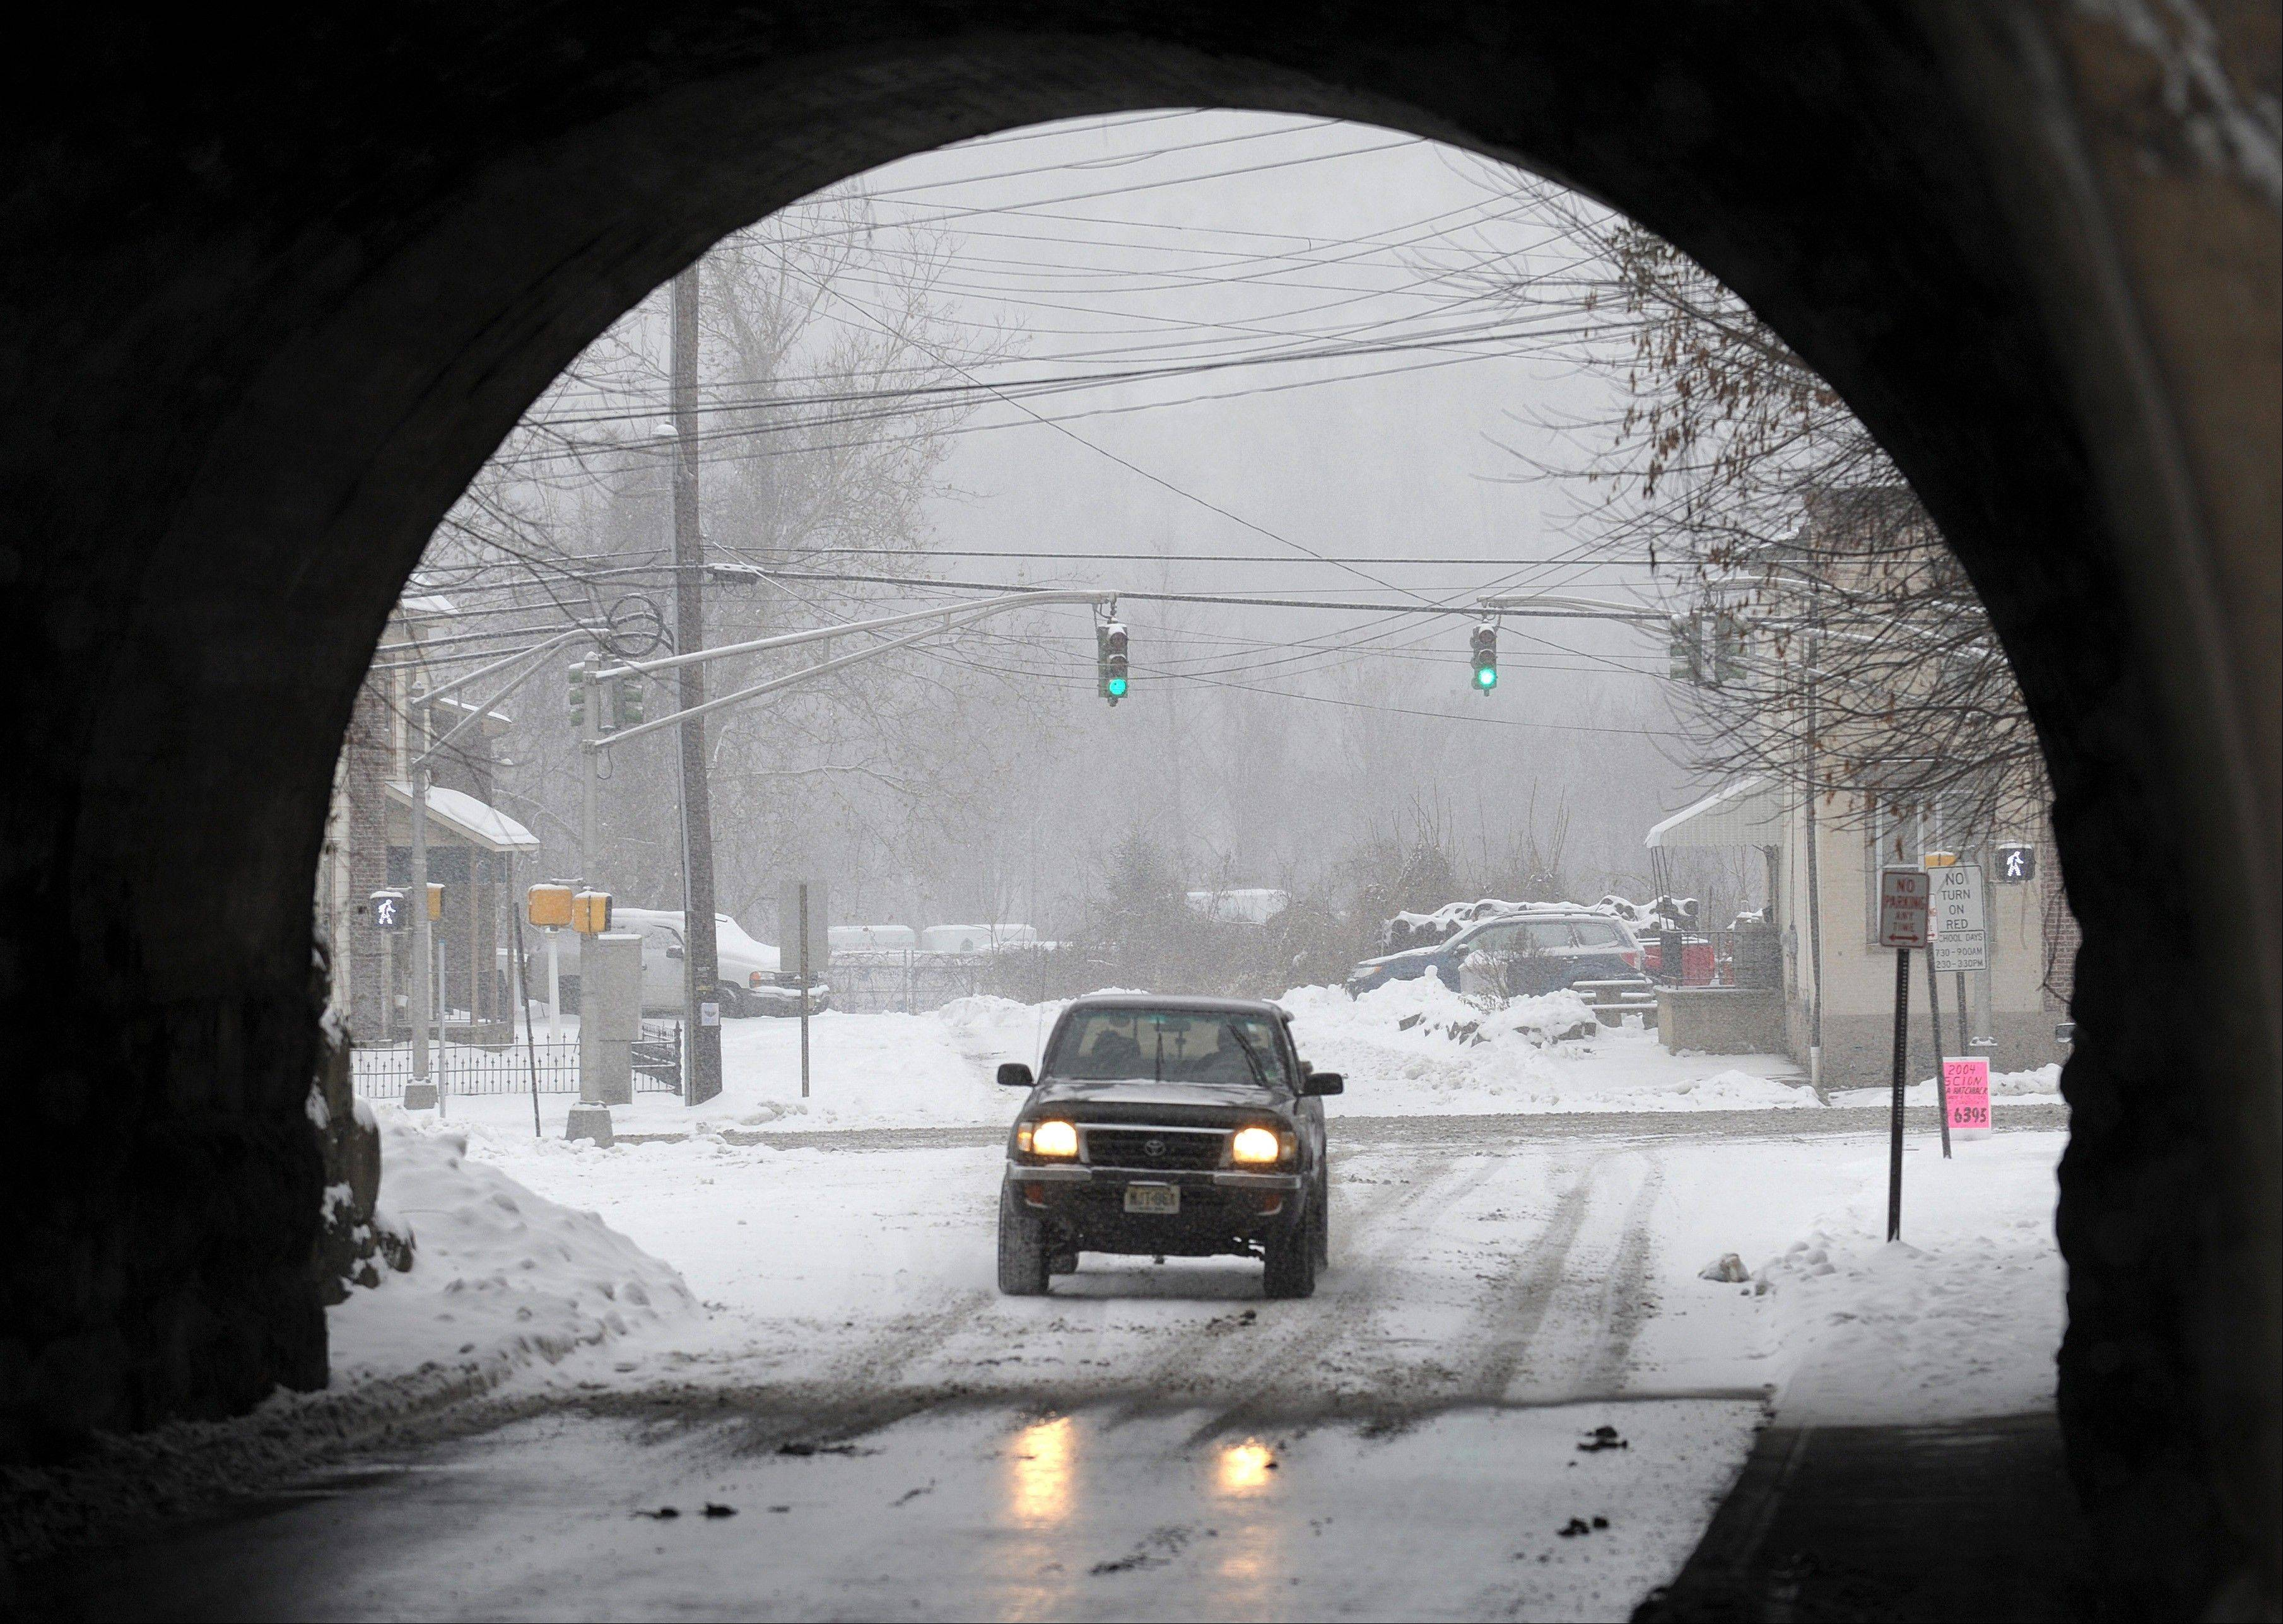 A truck drives through a tunnel on Center Street as snow falls on Tuesday, Dec. 17, 2013, in Phillipsburg, N.J.